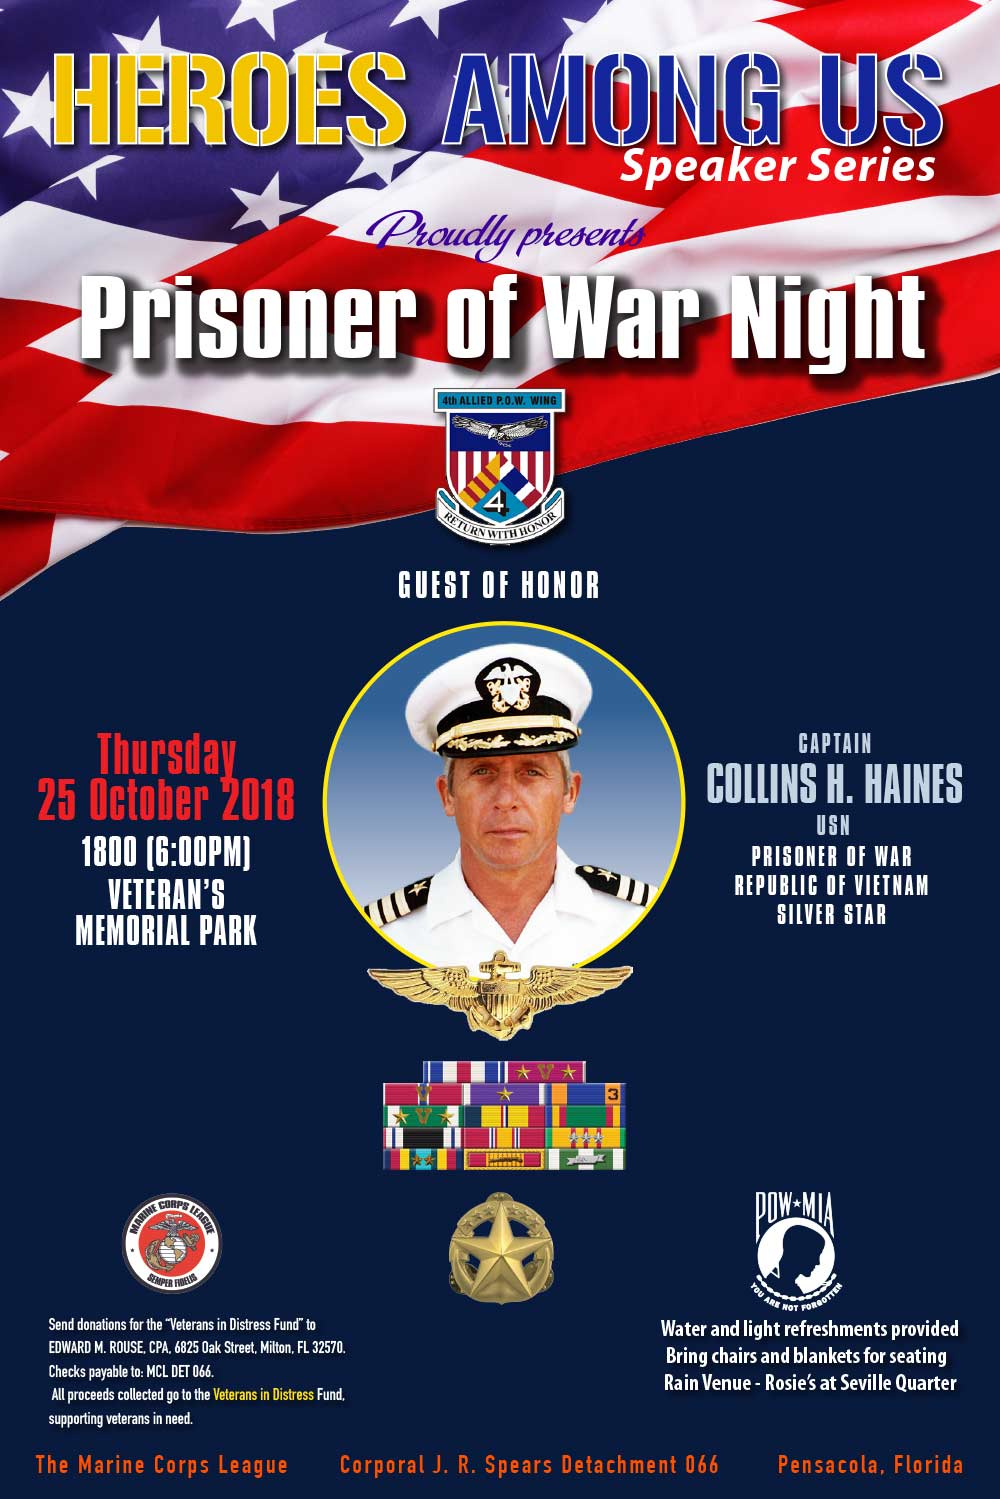 Photo of Heroes Among Us - Prisoner of War Night